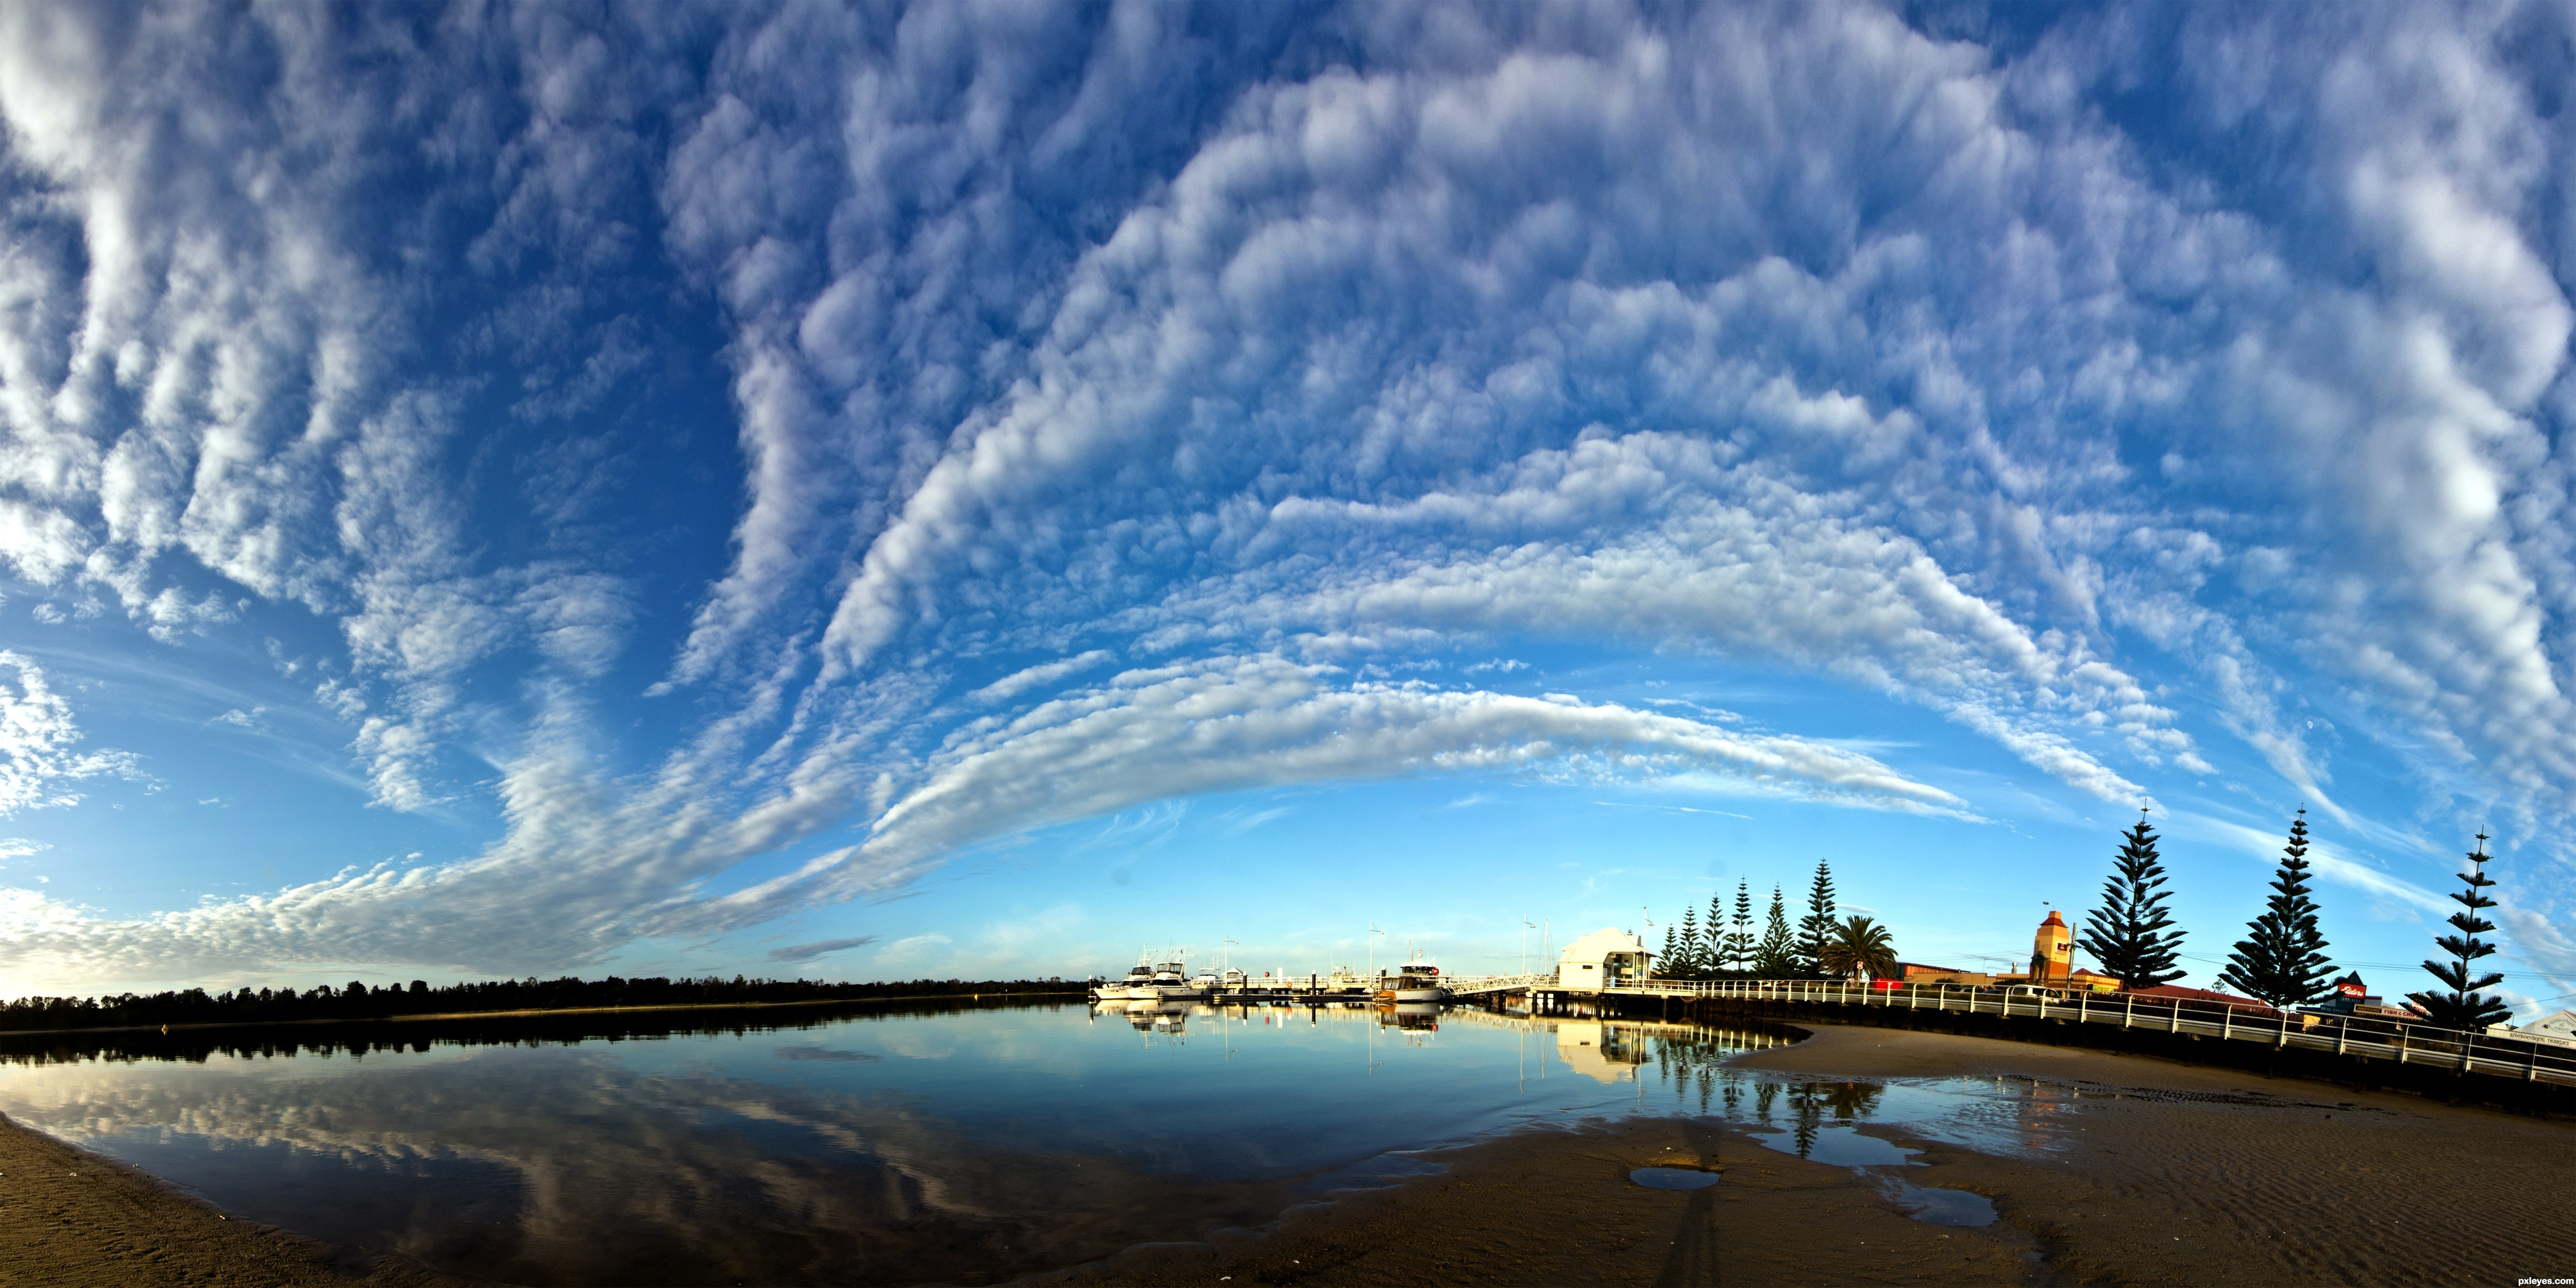 panoramic photography contest pictures image page 1 pxleyes com